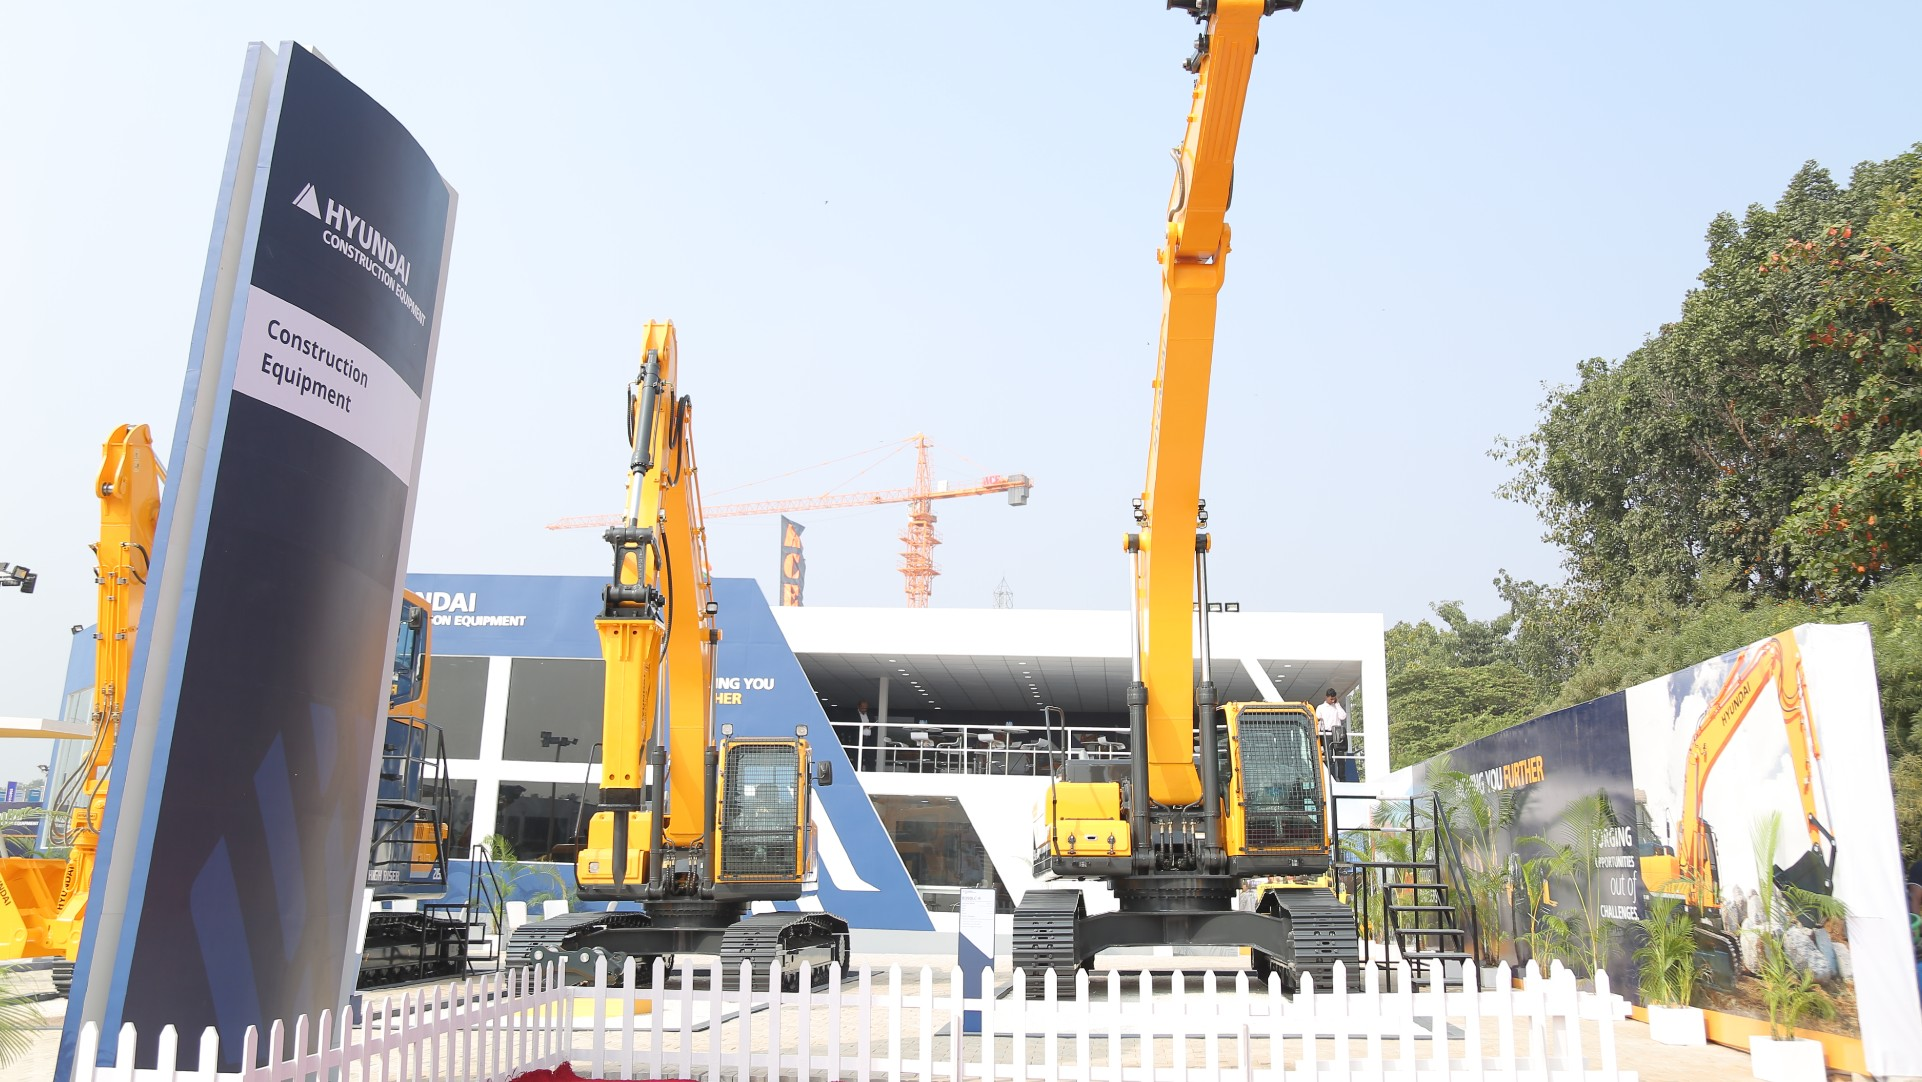 Hyundai Construction Equipment Stall at EXCON 2018